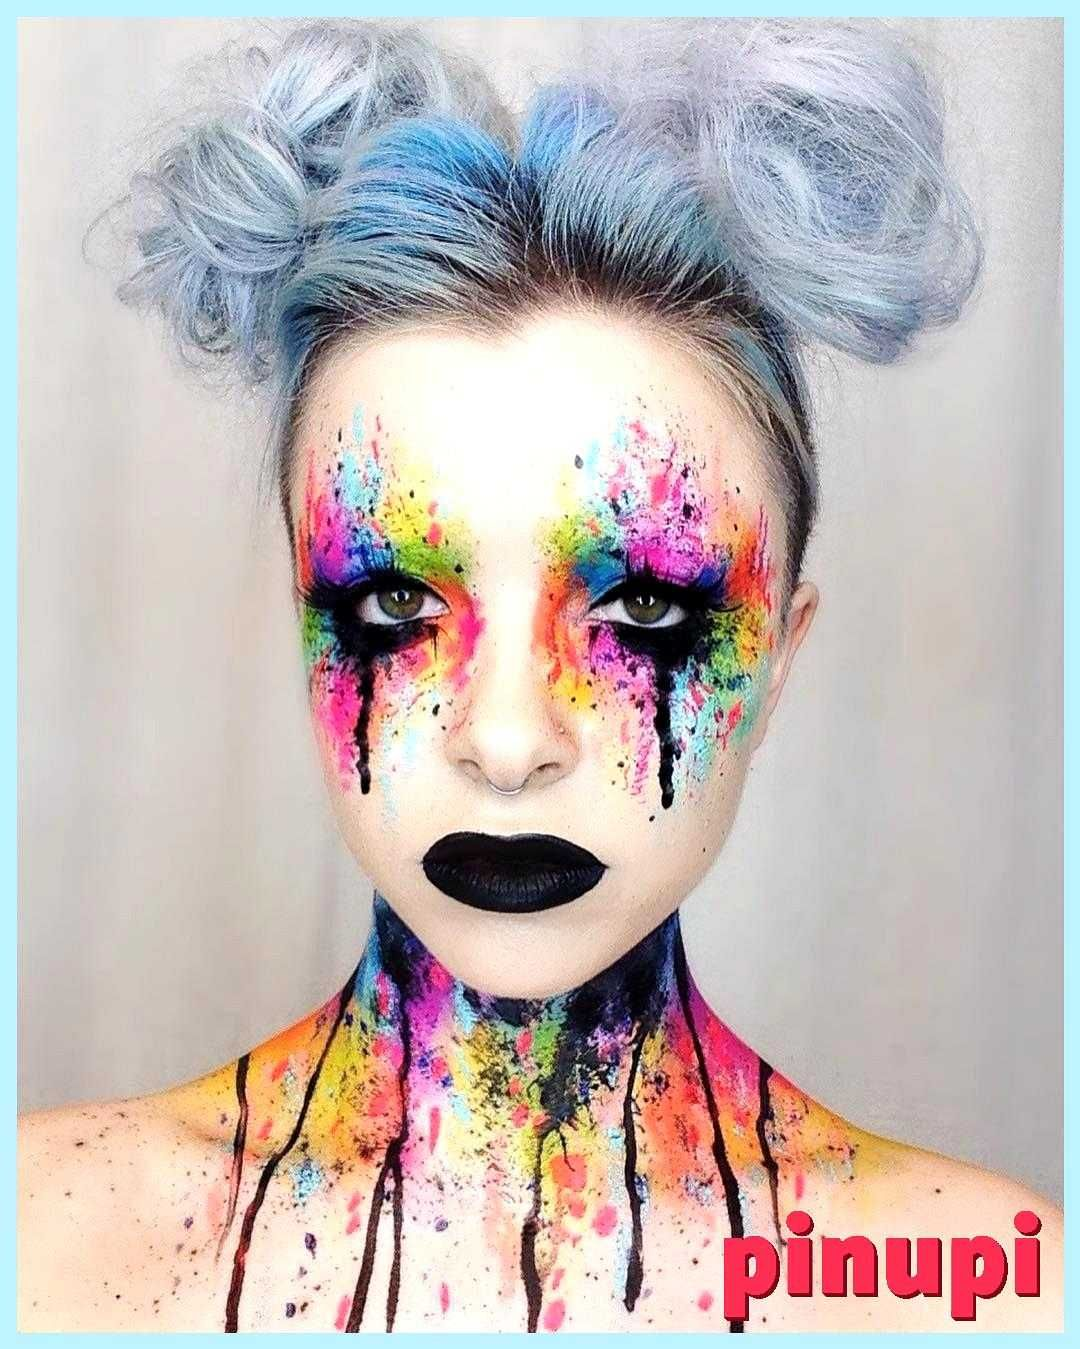 27 Terrifyingly Fun Halloween Makeup Ideas You Ll Love 27 Terrifyingly Fun Halloween Makeup Ideas You Ll Love Not Feeling Inspired No Need To Fret We Ve Got The Scary Part Covered With 27 Terrifyingly Fun Halloween Makeup Ideas That Require Just Your Cosmetic Stash And A Little Patience You Don T Have To Be A